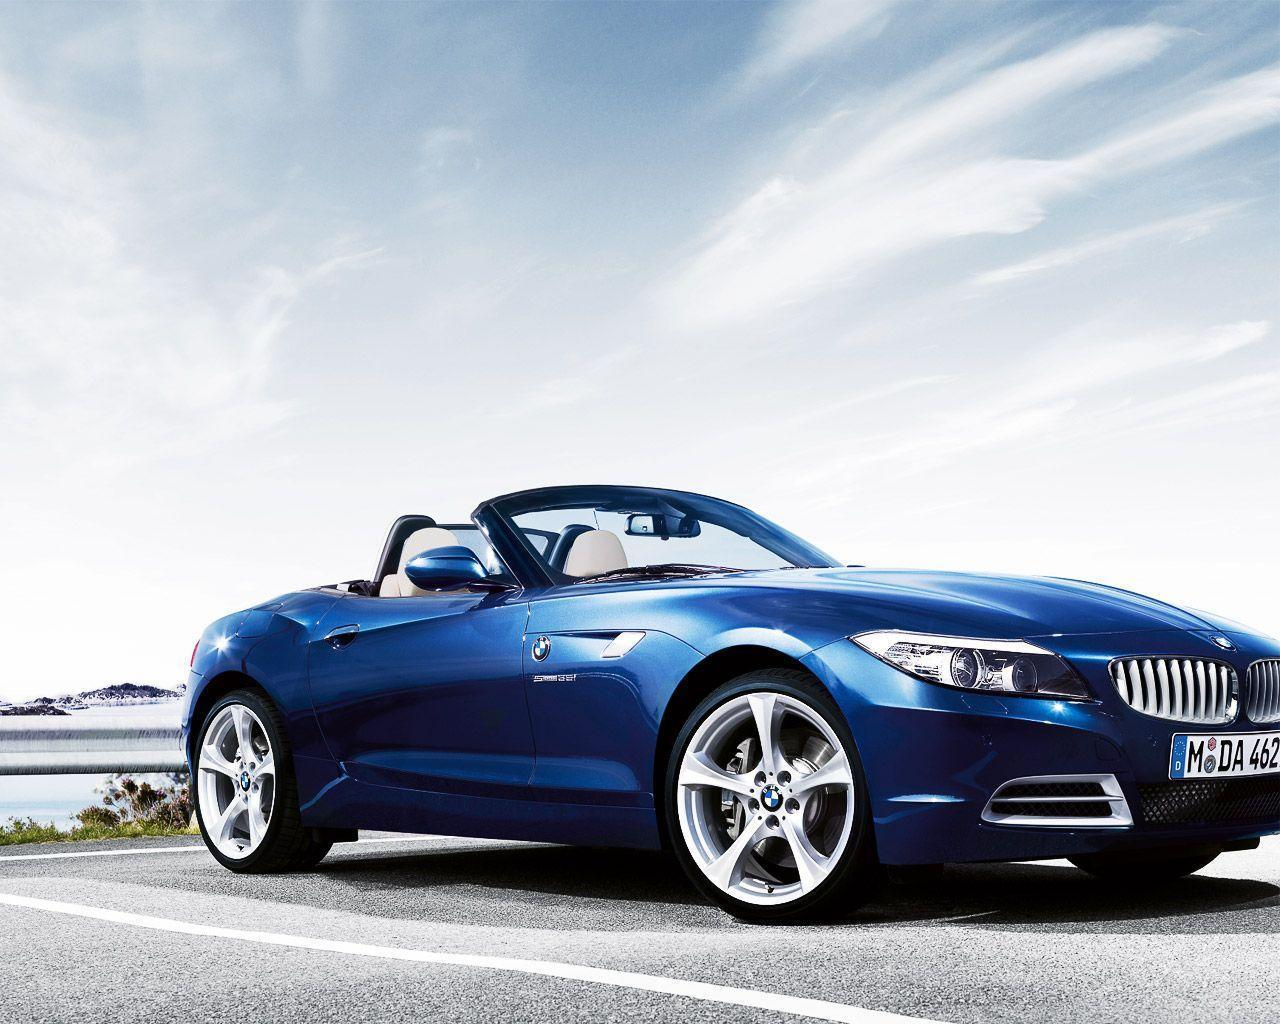 BMW Z4 cars wallpaper » Holy Drift - HD Car Wallpapers and Videos